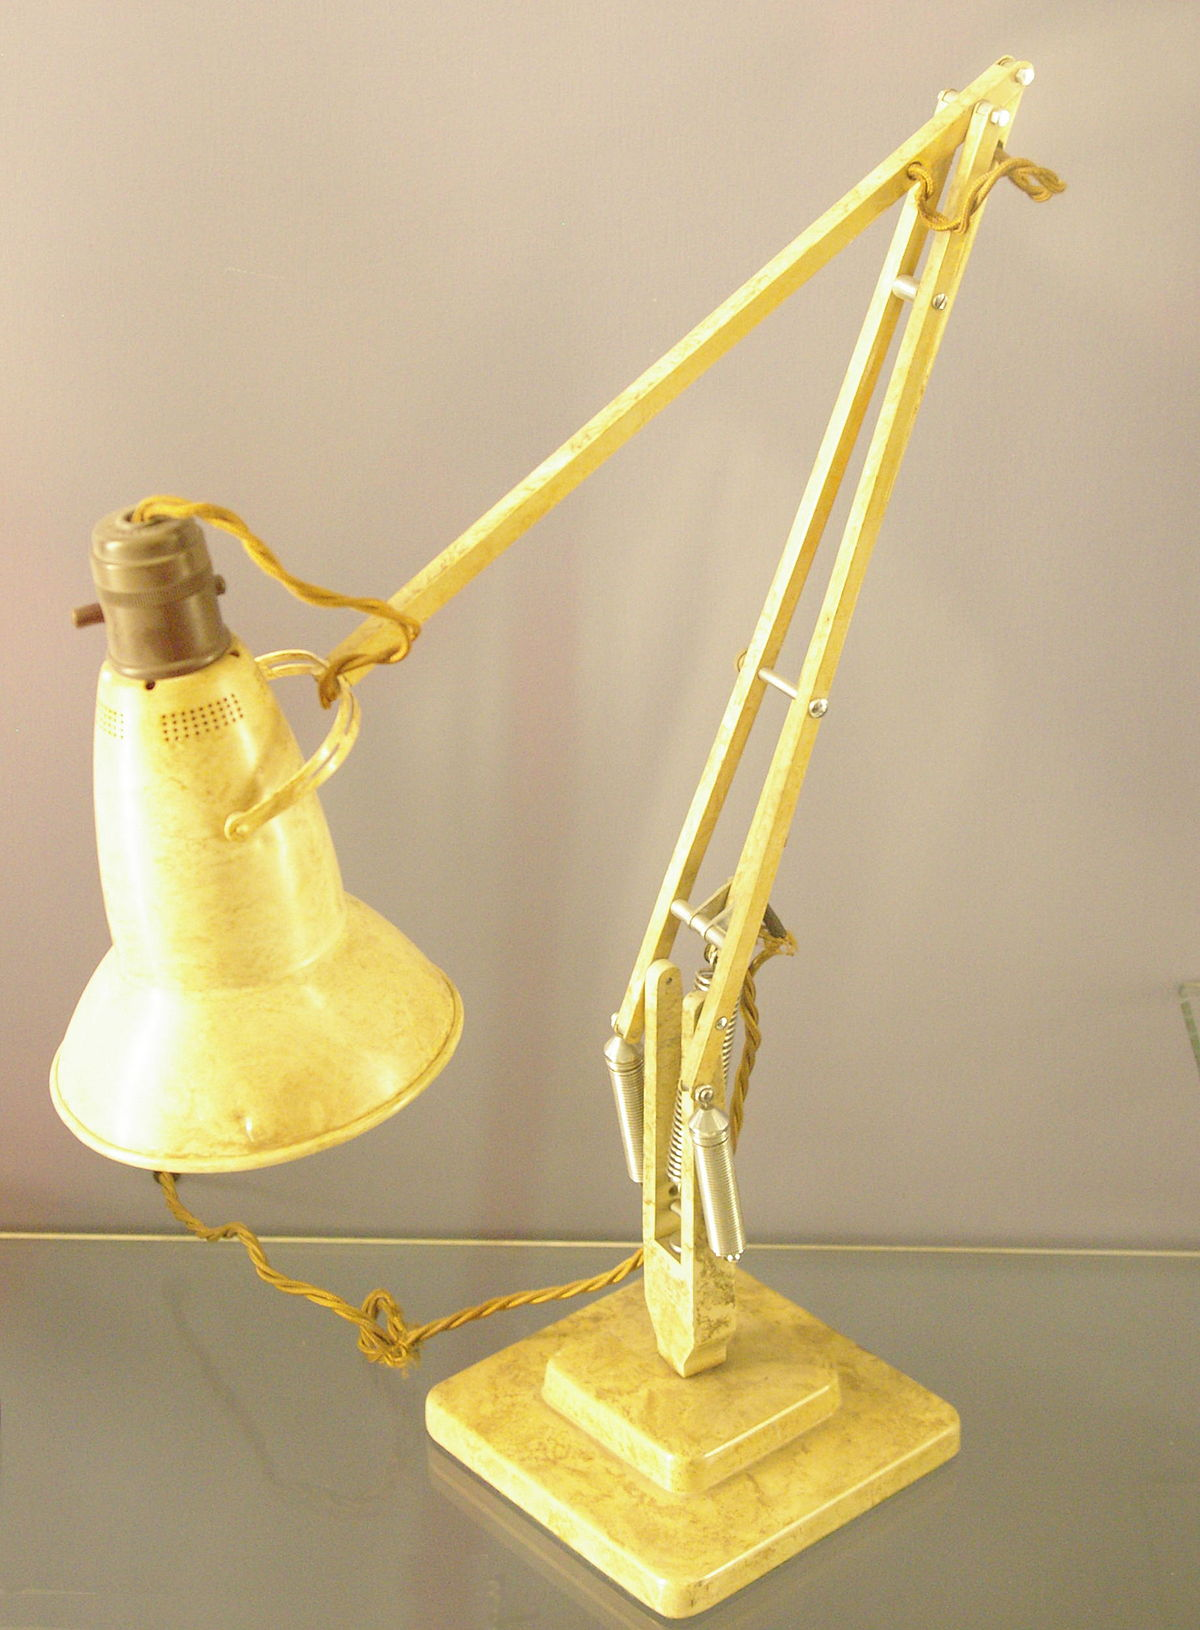 Balanced-arm lamp - Wikipedia